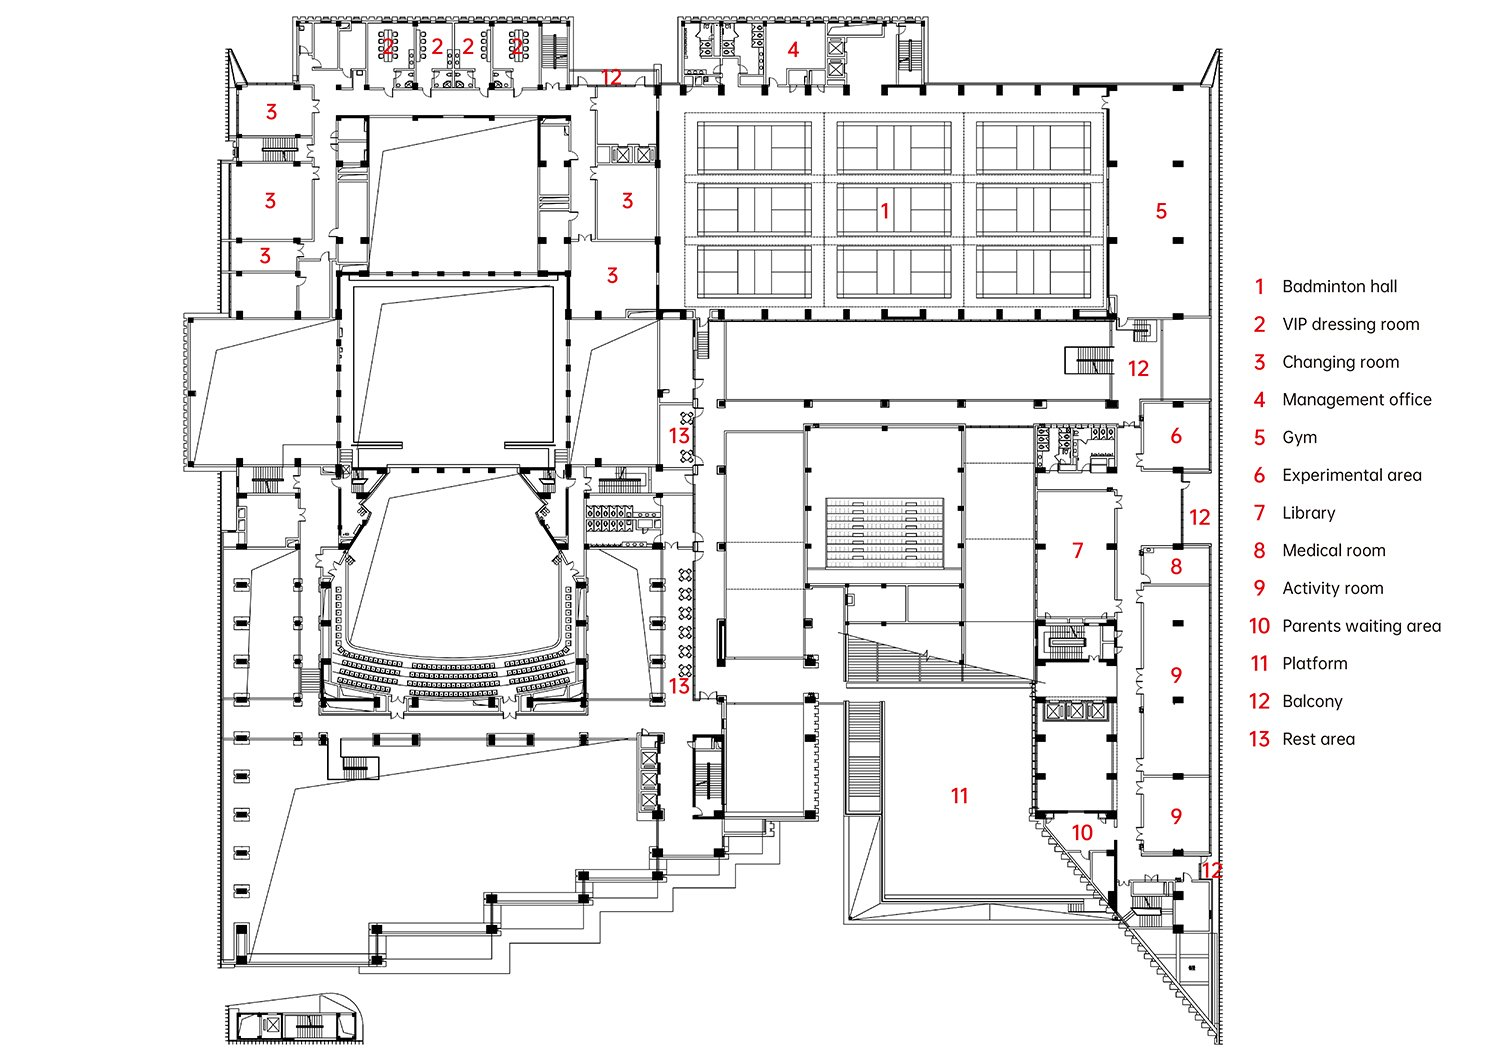 3rd Floor Plan The Architectural Design & Research Institute of Zhejiang University}